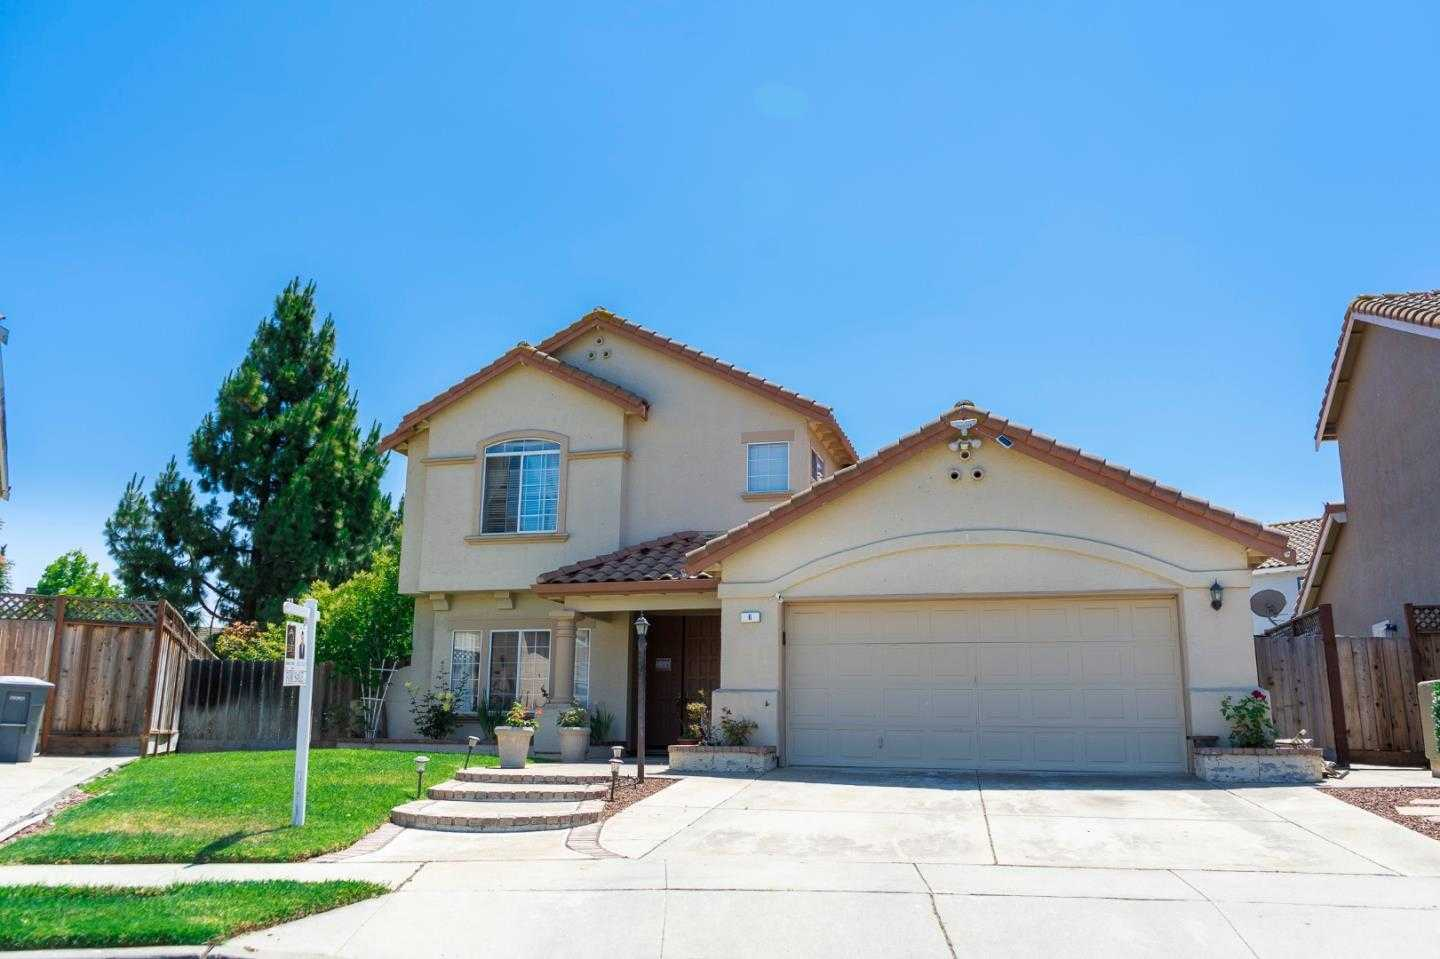 $649,000 - 5Br/3Ba -  for Sale in Salinas